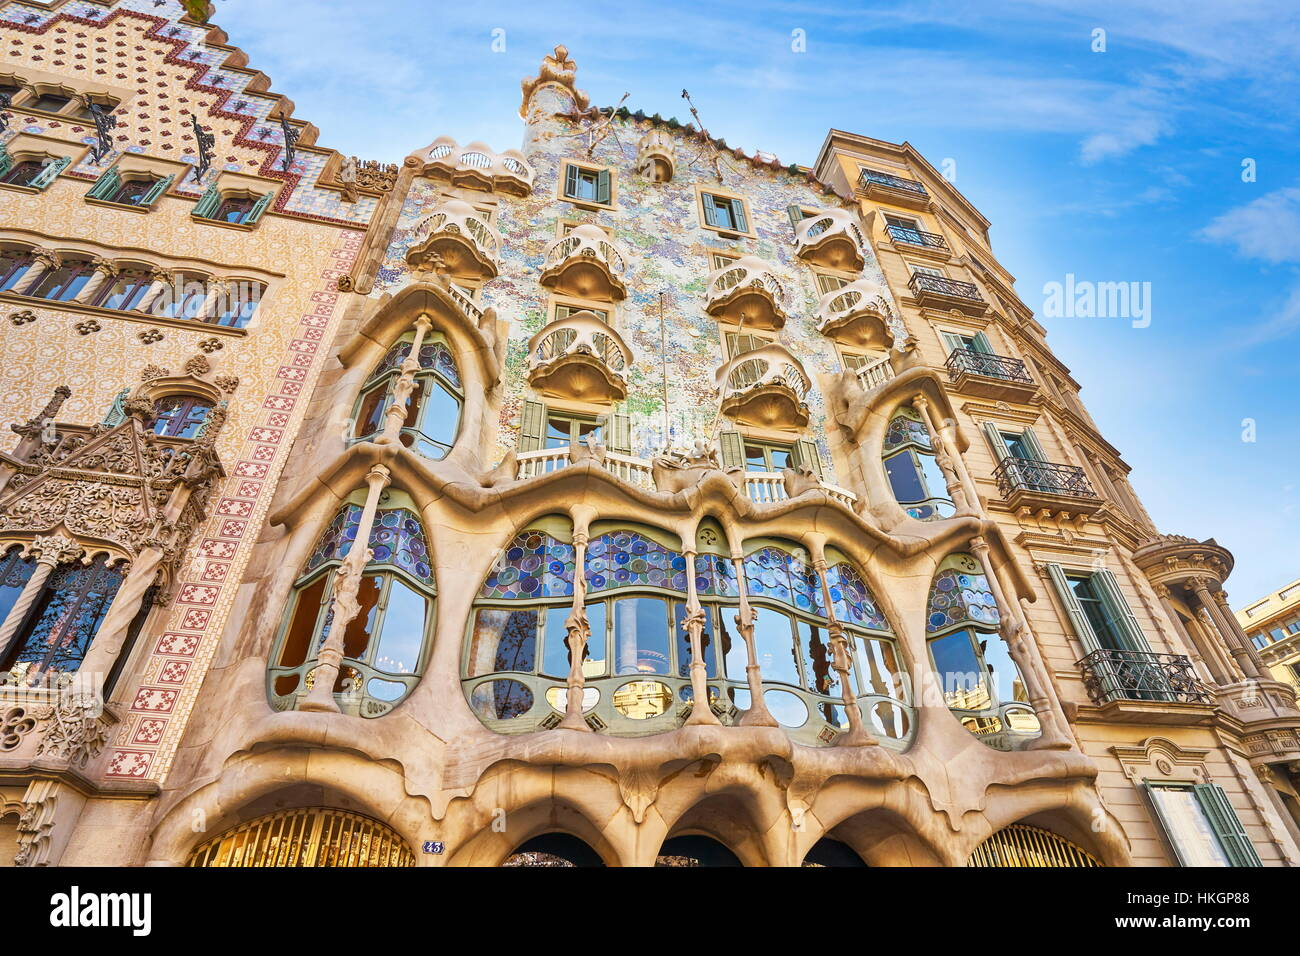 Casa Batllo house design by Antonio Gaudi, Barcelona, Catalonia, Spain - Stock Image